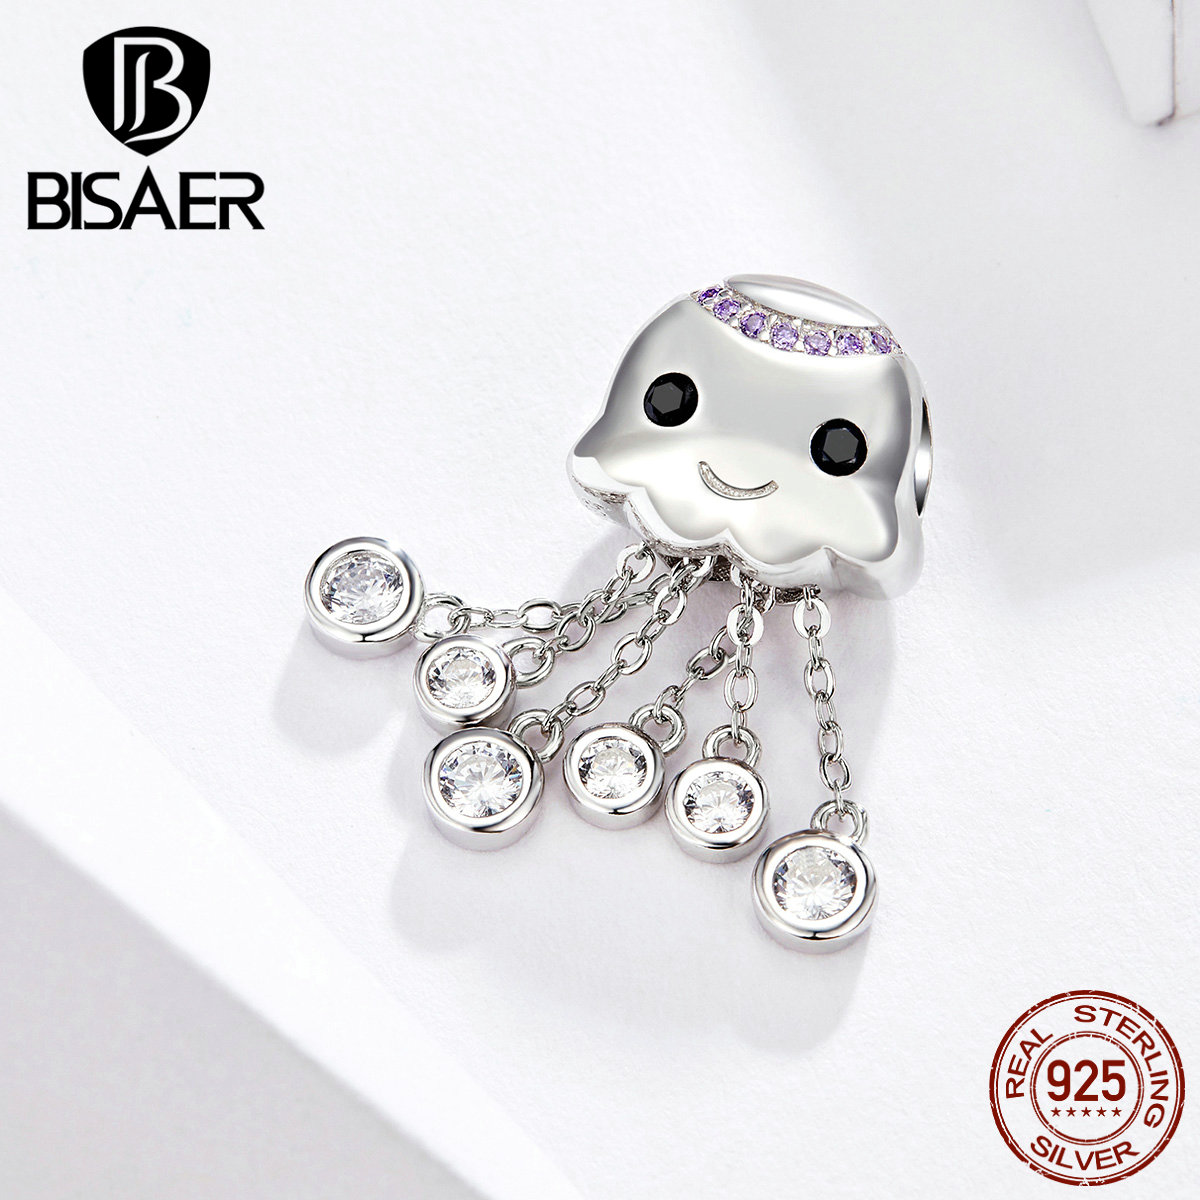 BISAER Octopus Charms 925 Sterling Silver Hyperbole Ocean Octopus Pendant Beads Fit Beads Bracelets Silver Jewelry EFC081